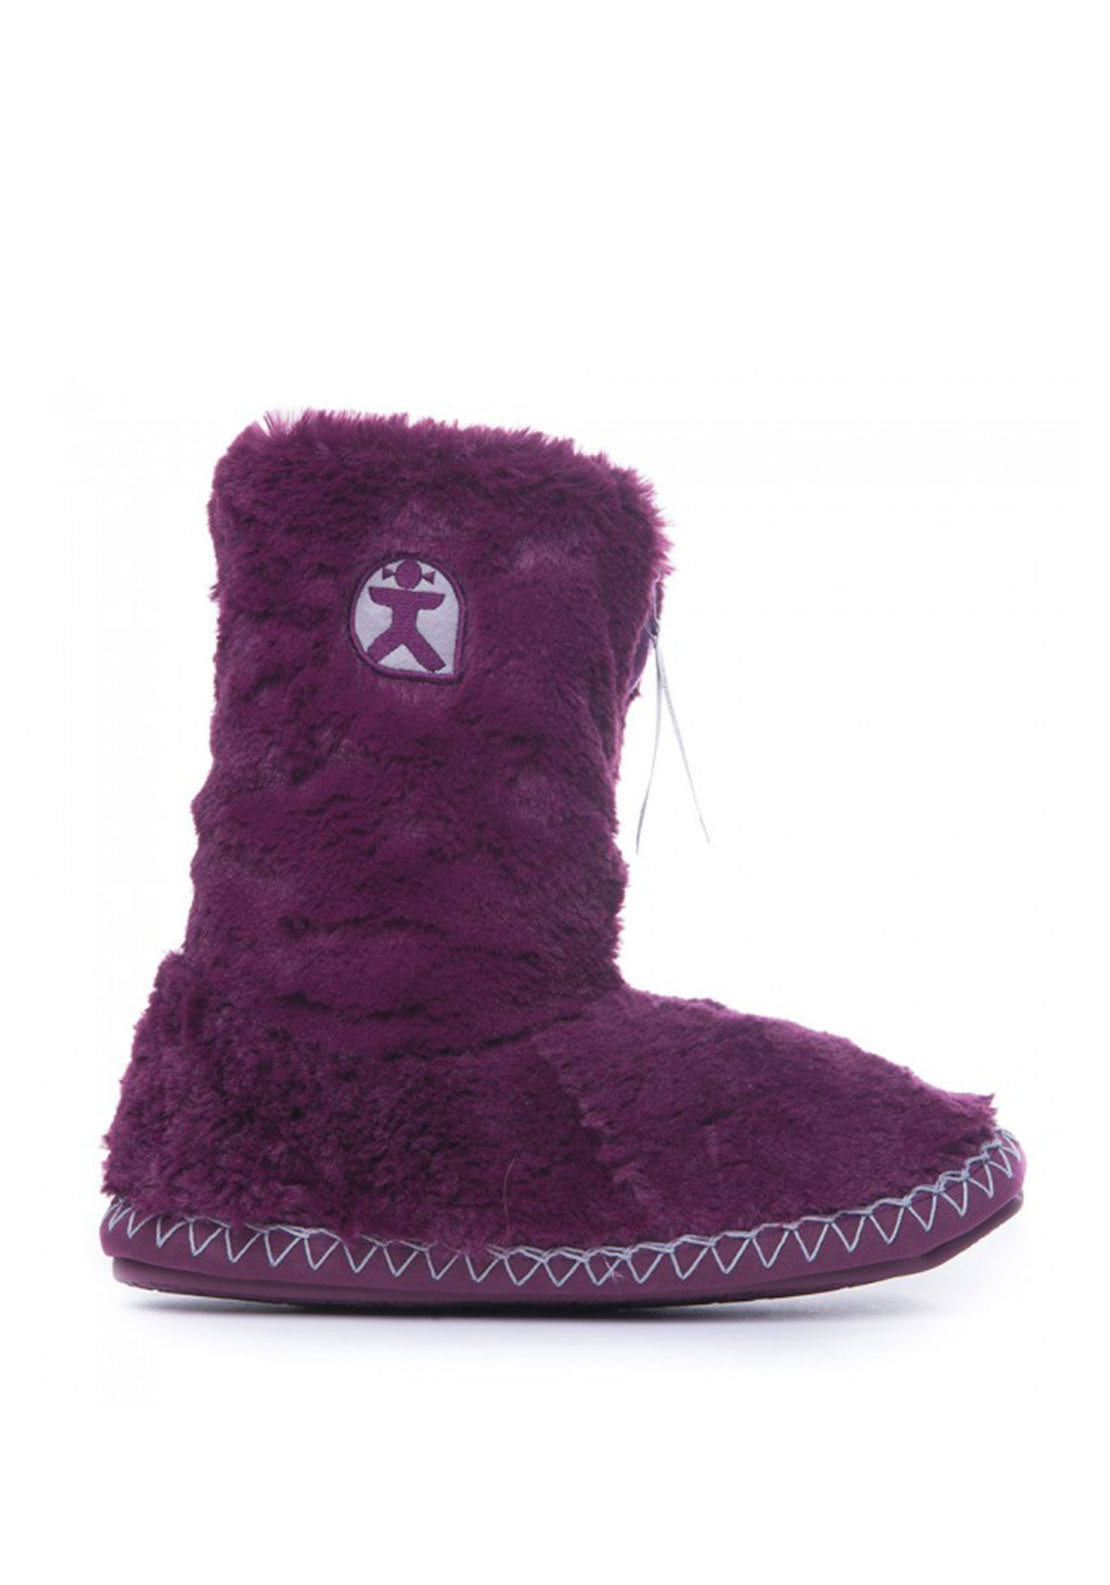 Bedroom Athletics Marilyn Slipper Boots, Plum